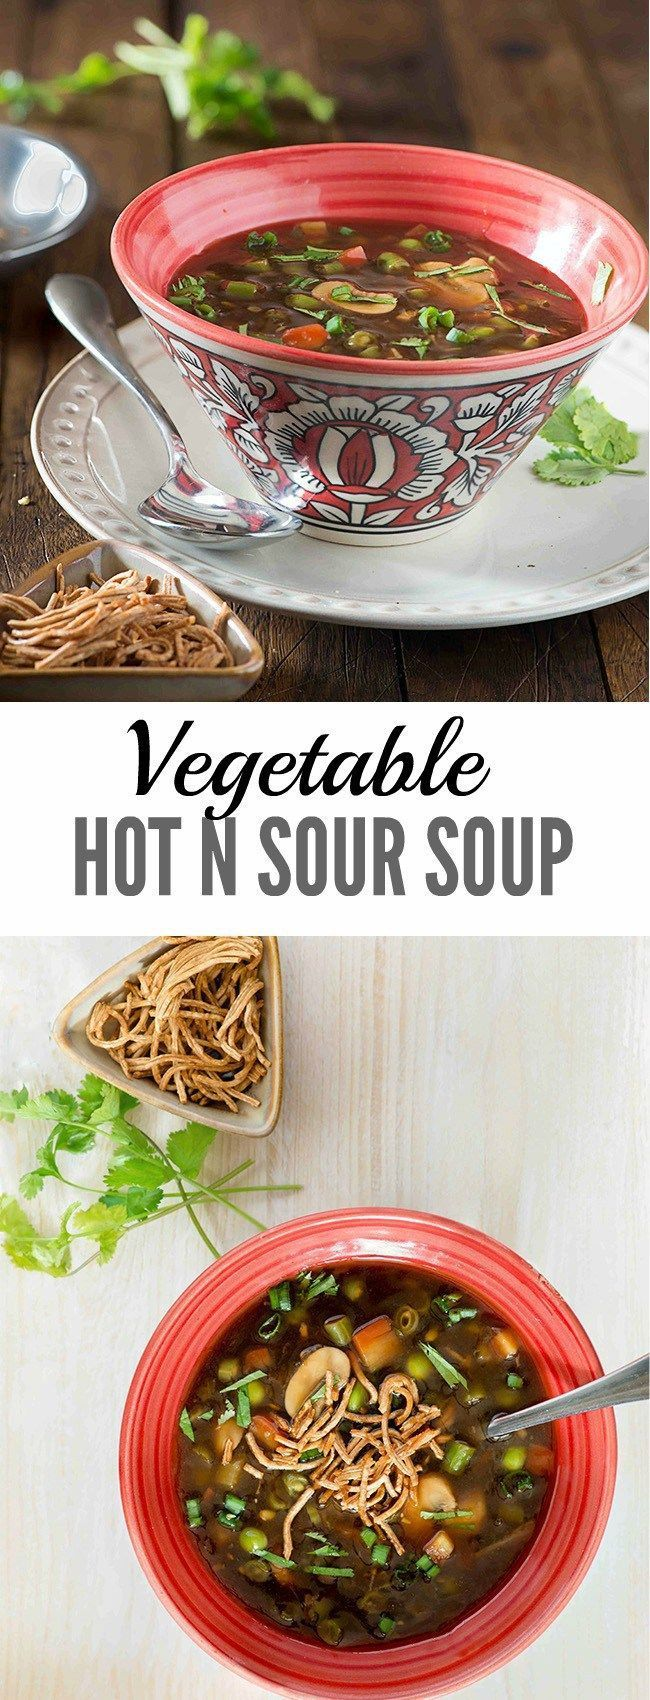 Vegetable Hot n Sour Soup is popular soup from Indo Chinese cuisine. As the name vegetable hot n sour soup suggests the soup is spicy with heat of chili, loaded with fresh vegetables and tanginess from rice vinegar.